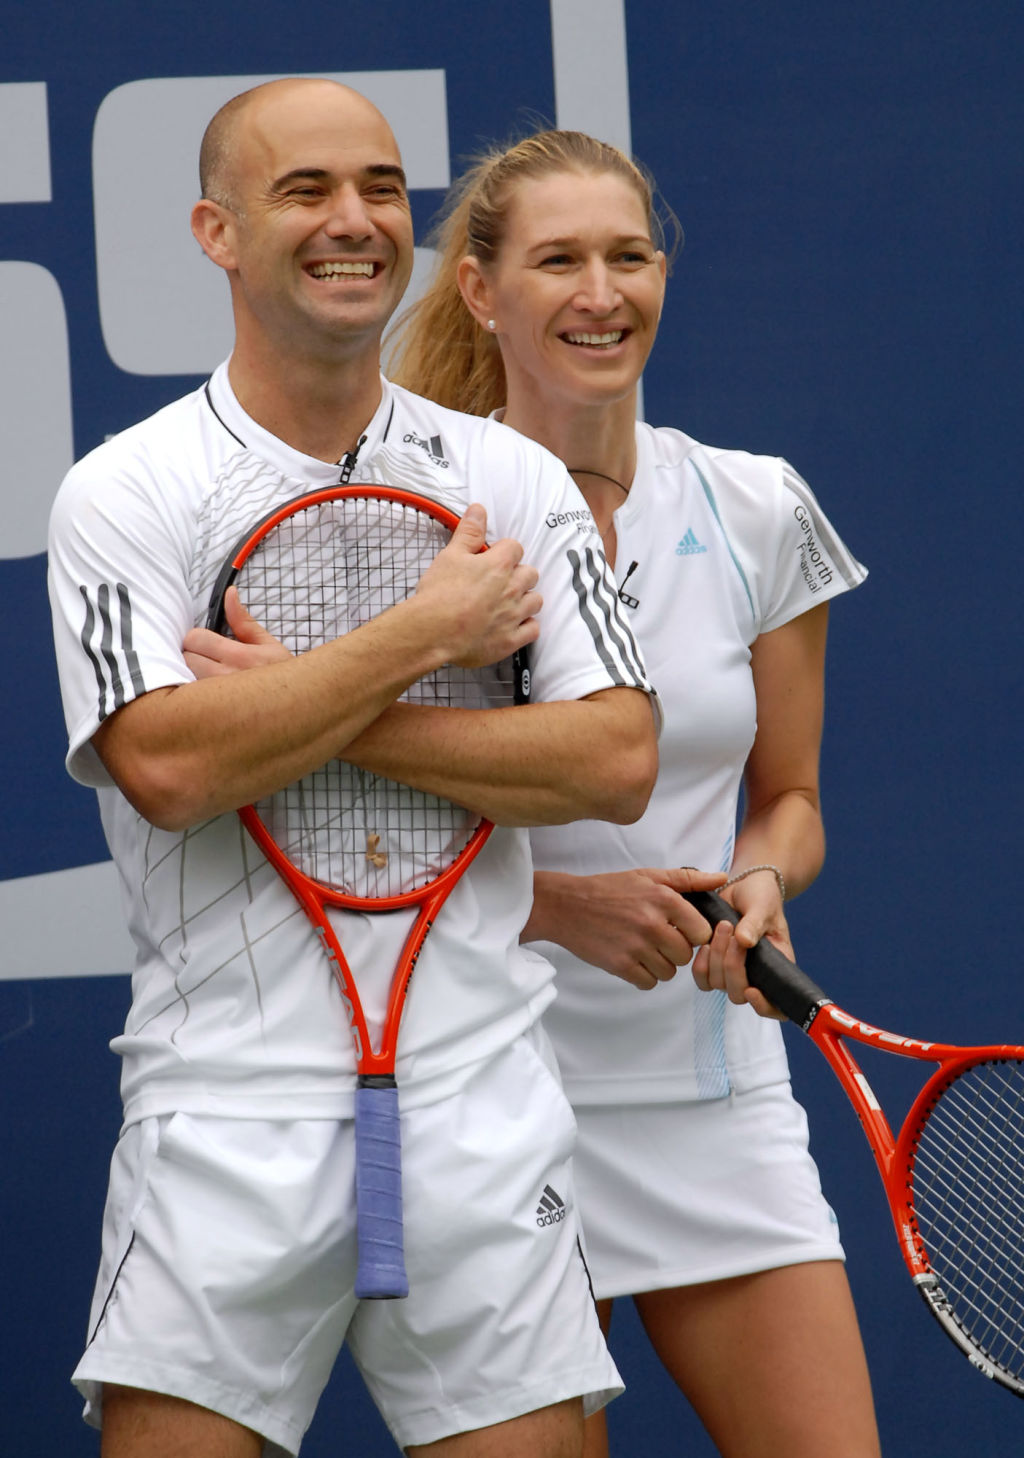 Andre Agassi, left, and his wife Steffi Graf . Photo: Paul Hawthorn.